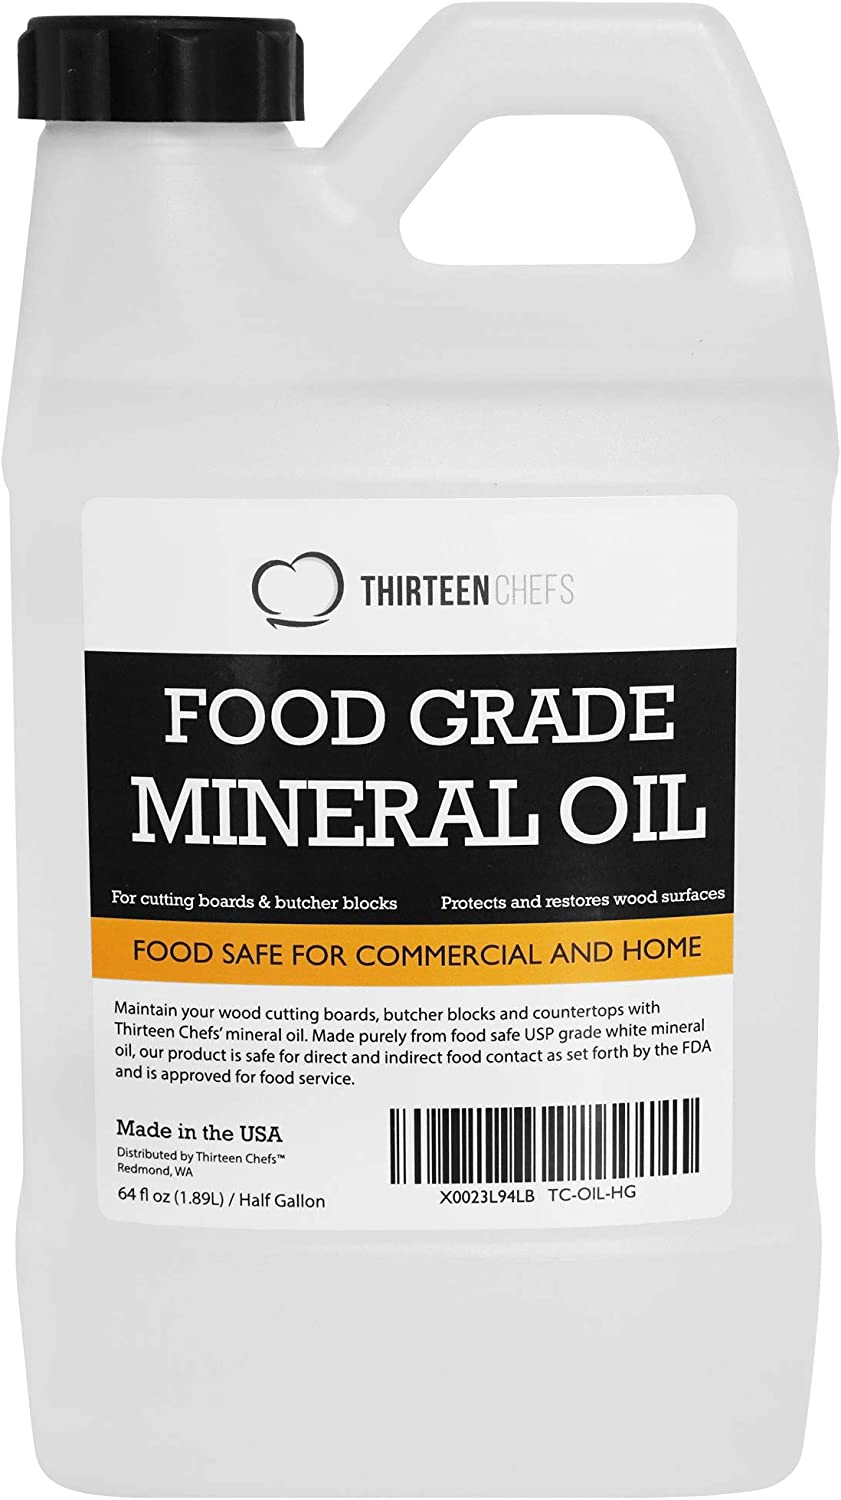 Thirteen Chefs Food Grade Mineral Oil for Cutting Boards, Countertops and Butcher Blocks - Food Safe and Made in The US 64oz, Half Gallon